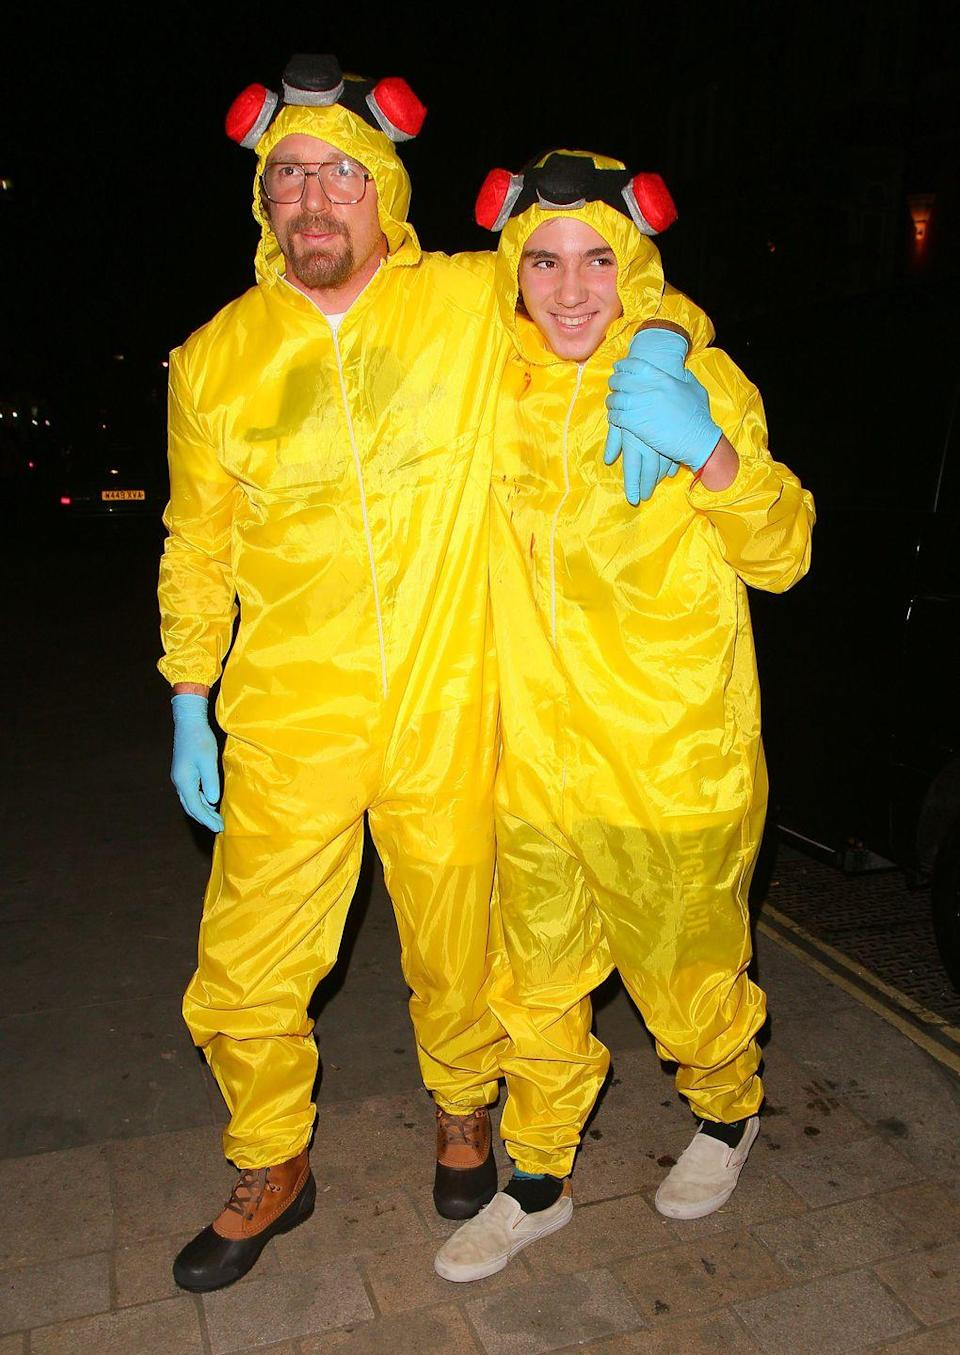 <p>Guy Ritchie and son Rocco attended the 2014 UNICEF Halloween Ball in London, England as the dynamic duo from fan favorite <em>Breaking Bad</em>.</p>